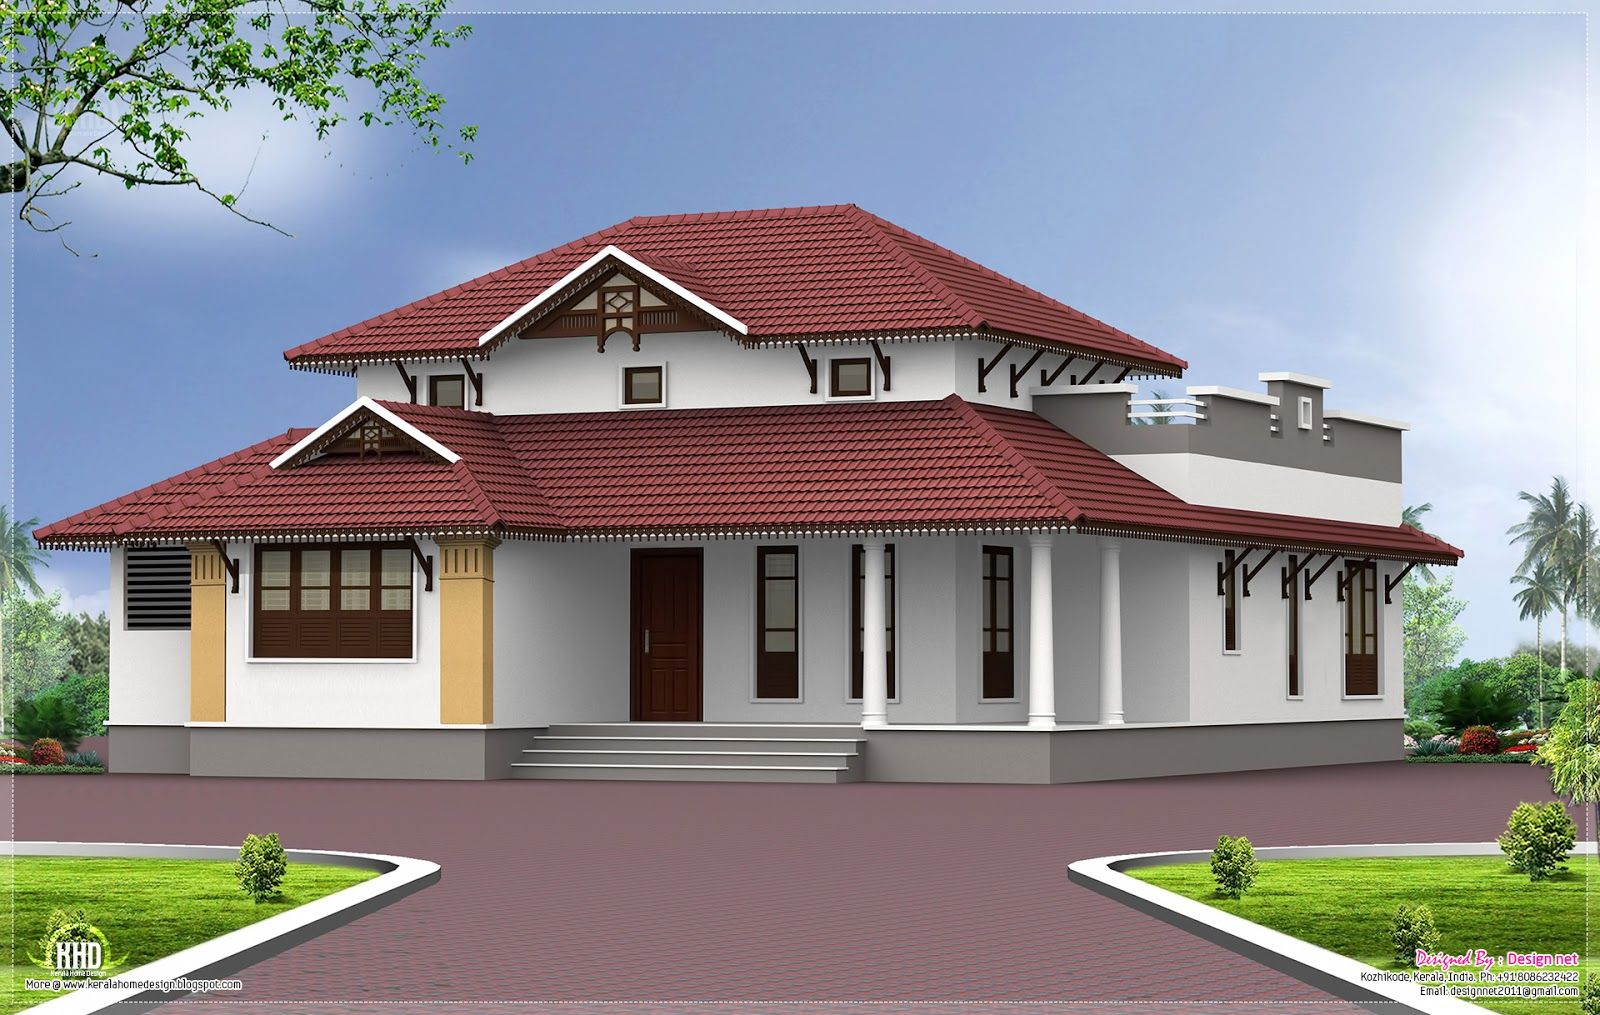 Exterior Designs Of Home With One Floor In India